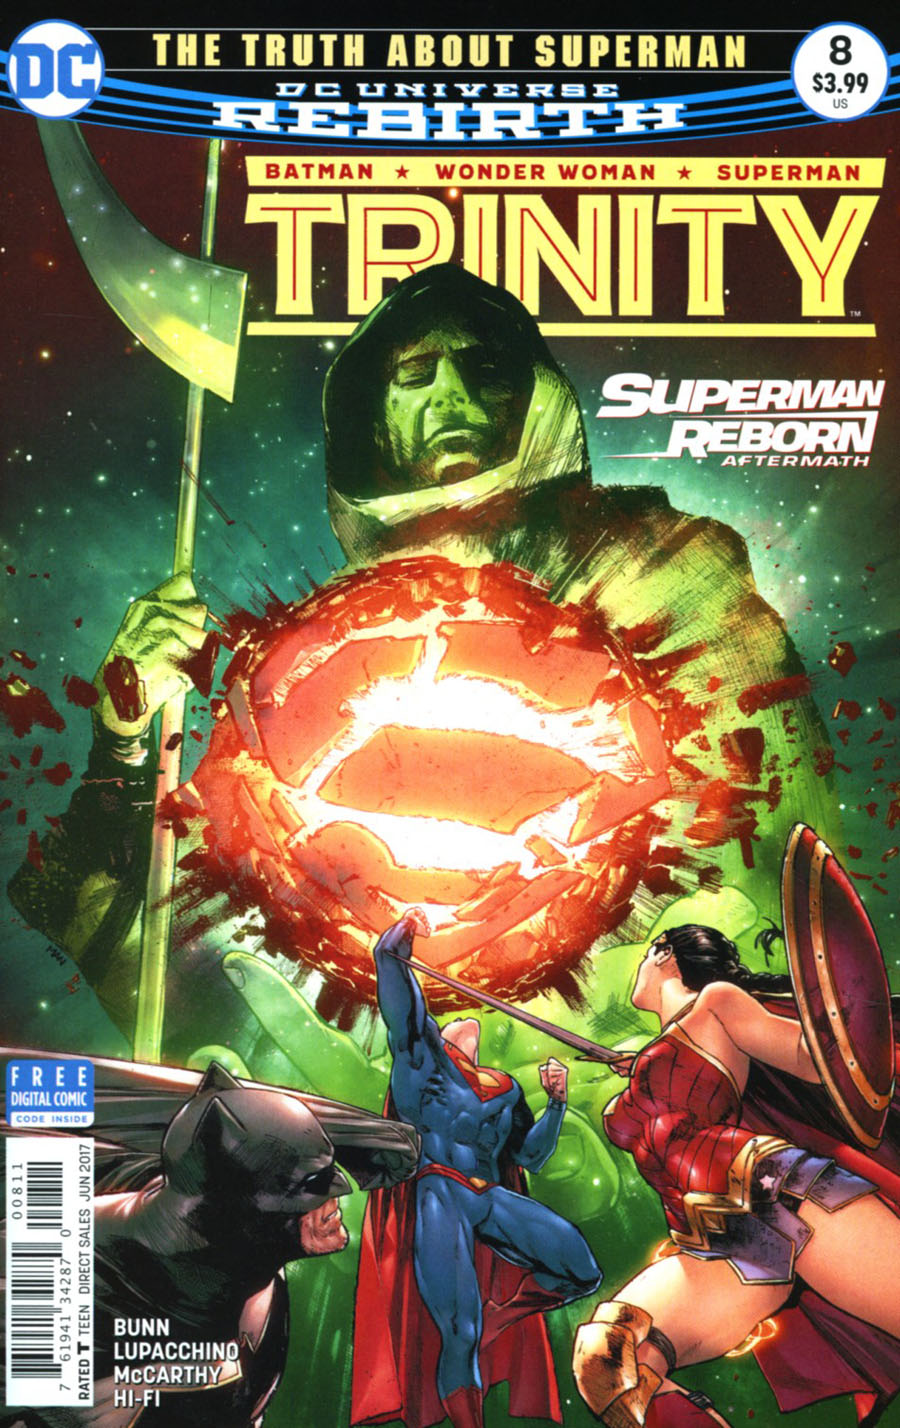 Trinity Vol 2 #8 Cover A Regular Clay Mann Cover (Superman Reborn Aftermath Tie-In)